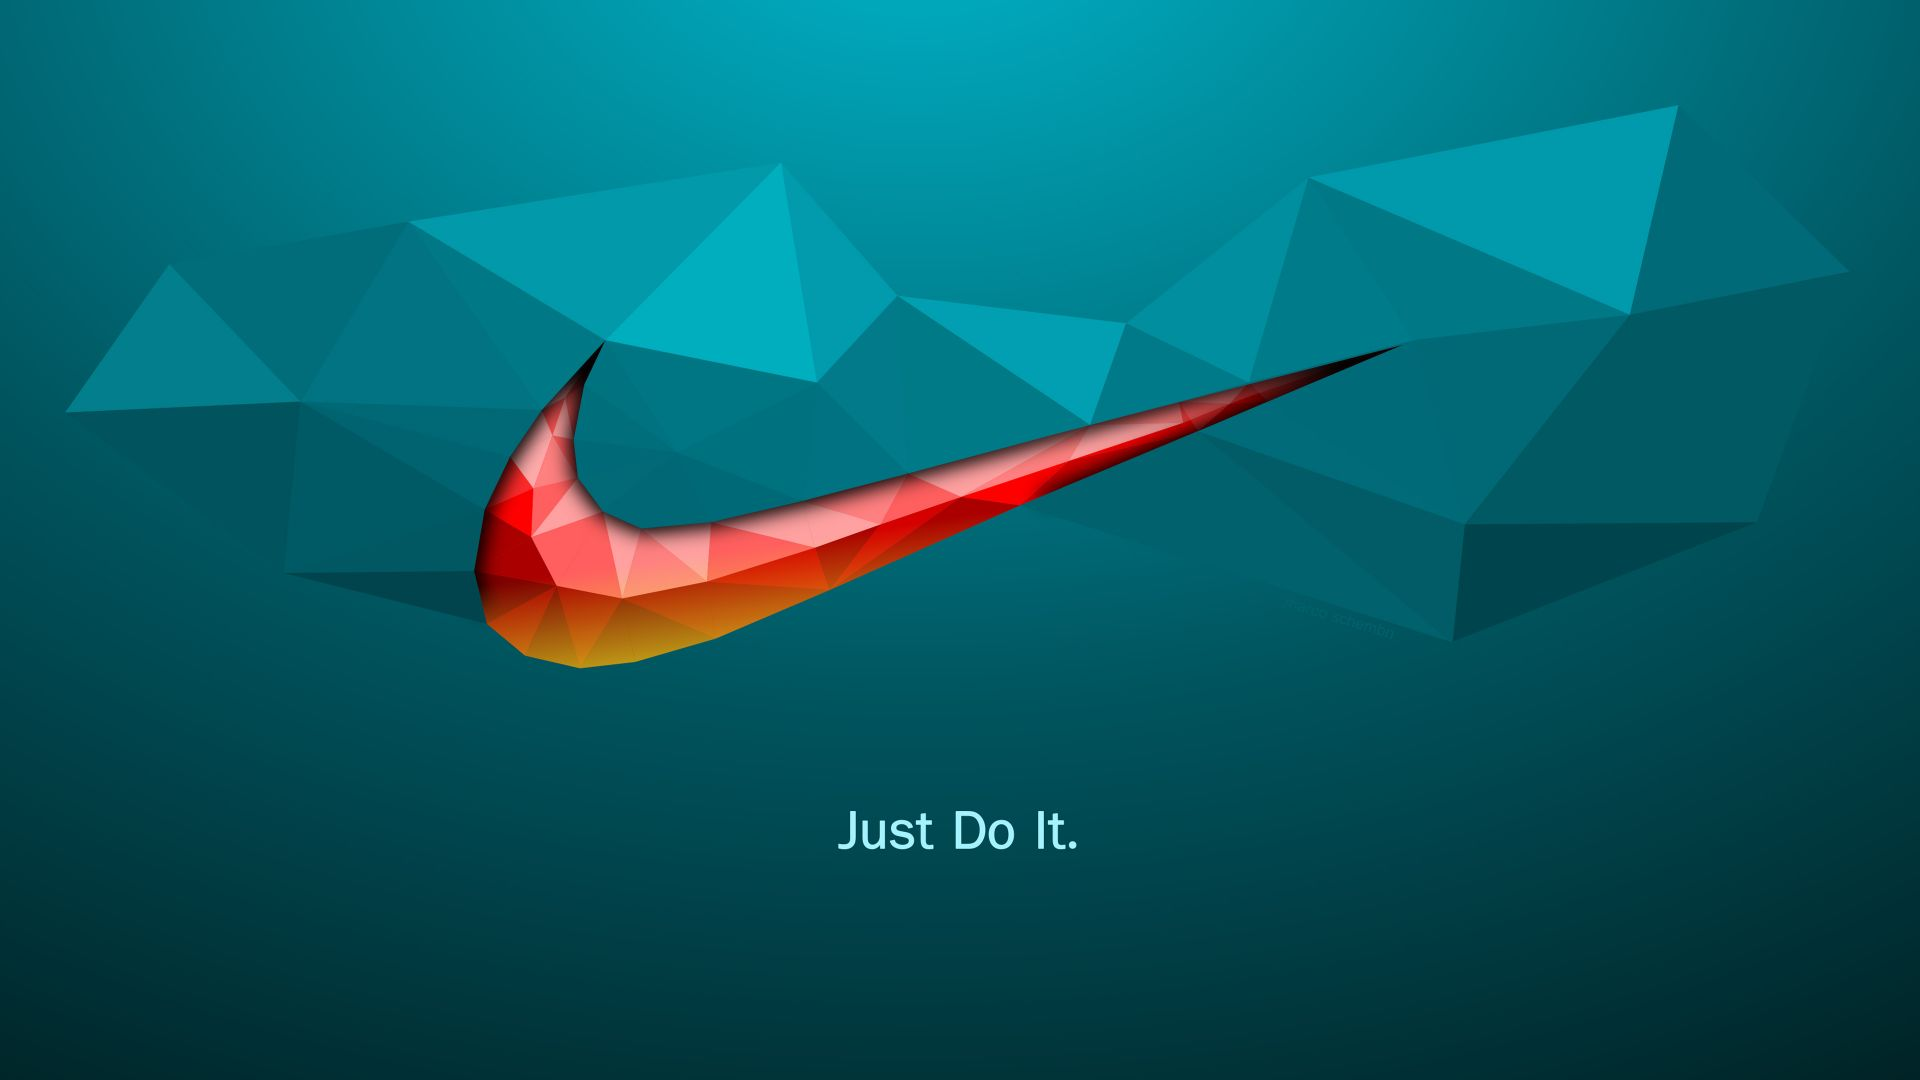 Wallpaper Just do it, quotes, Nike, logo, abstract